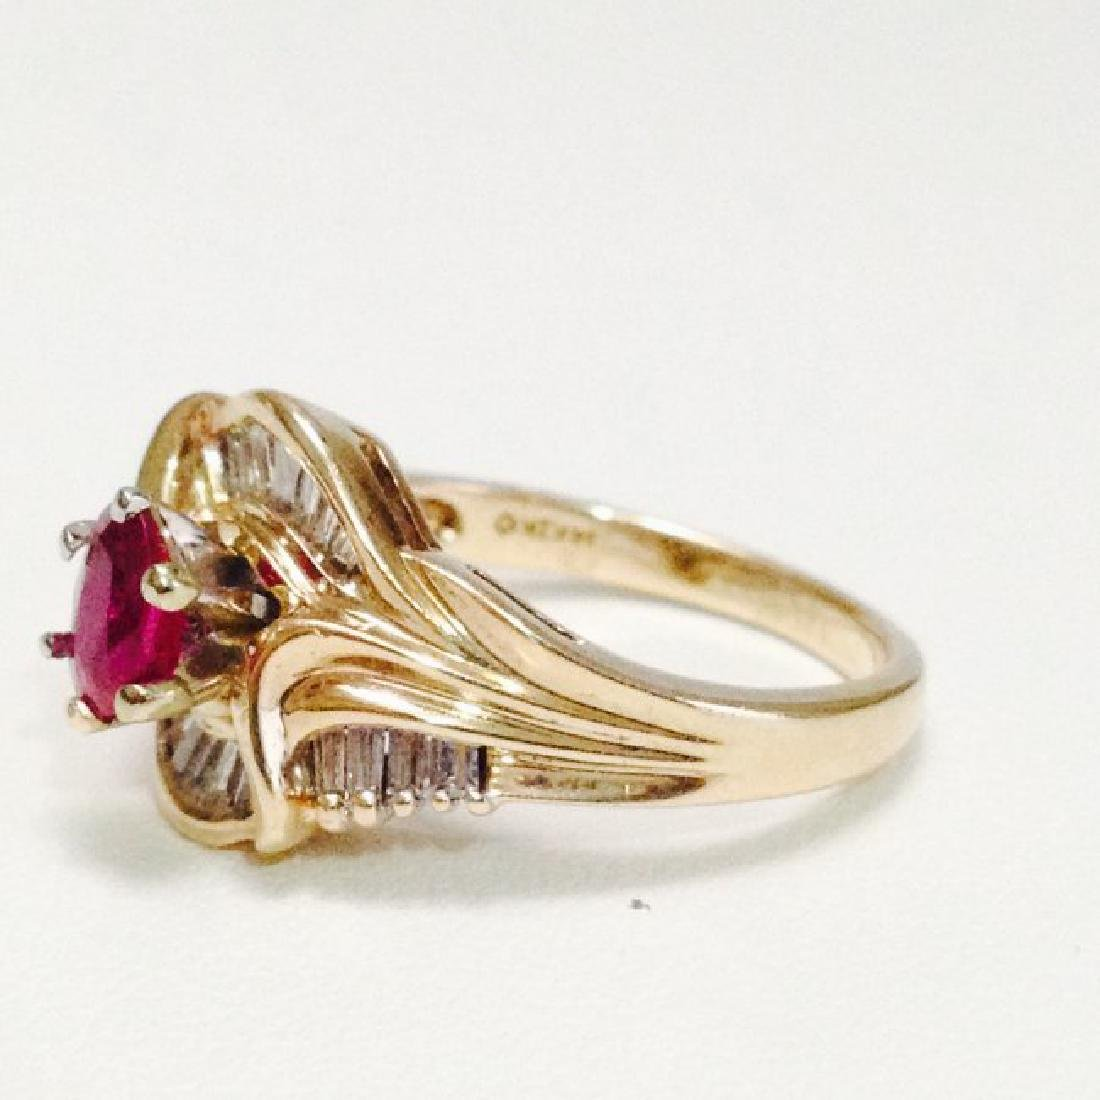 14k Gold Ruby And Diamond Cocktail Ring - 2